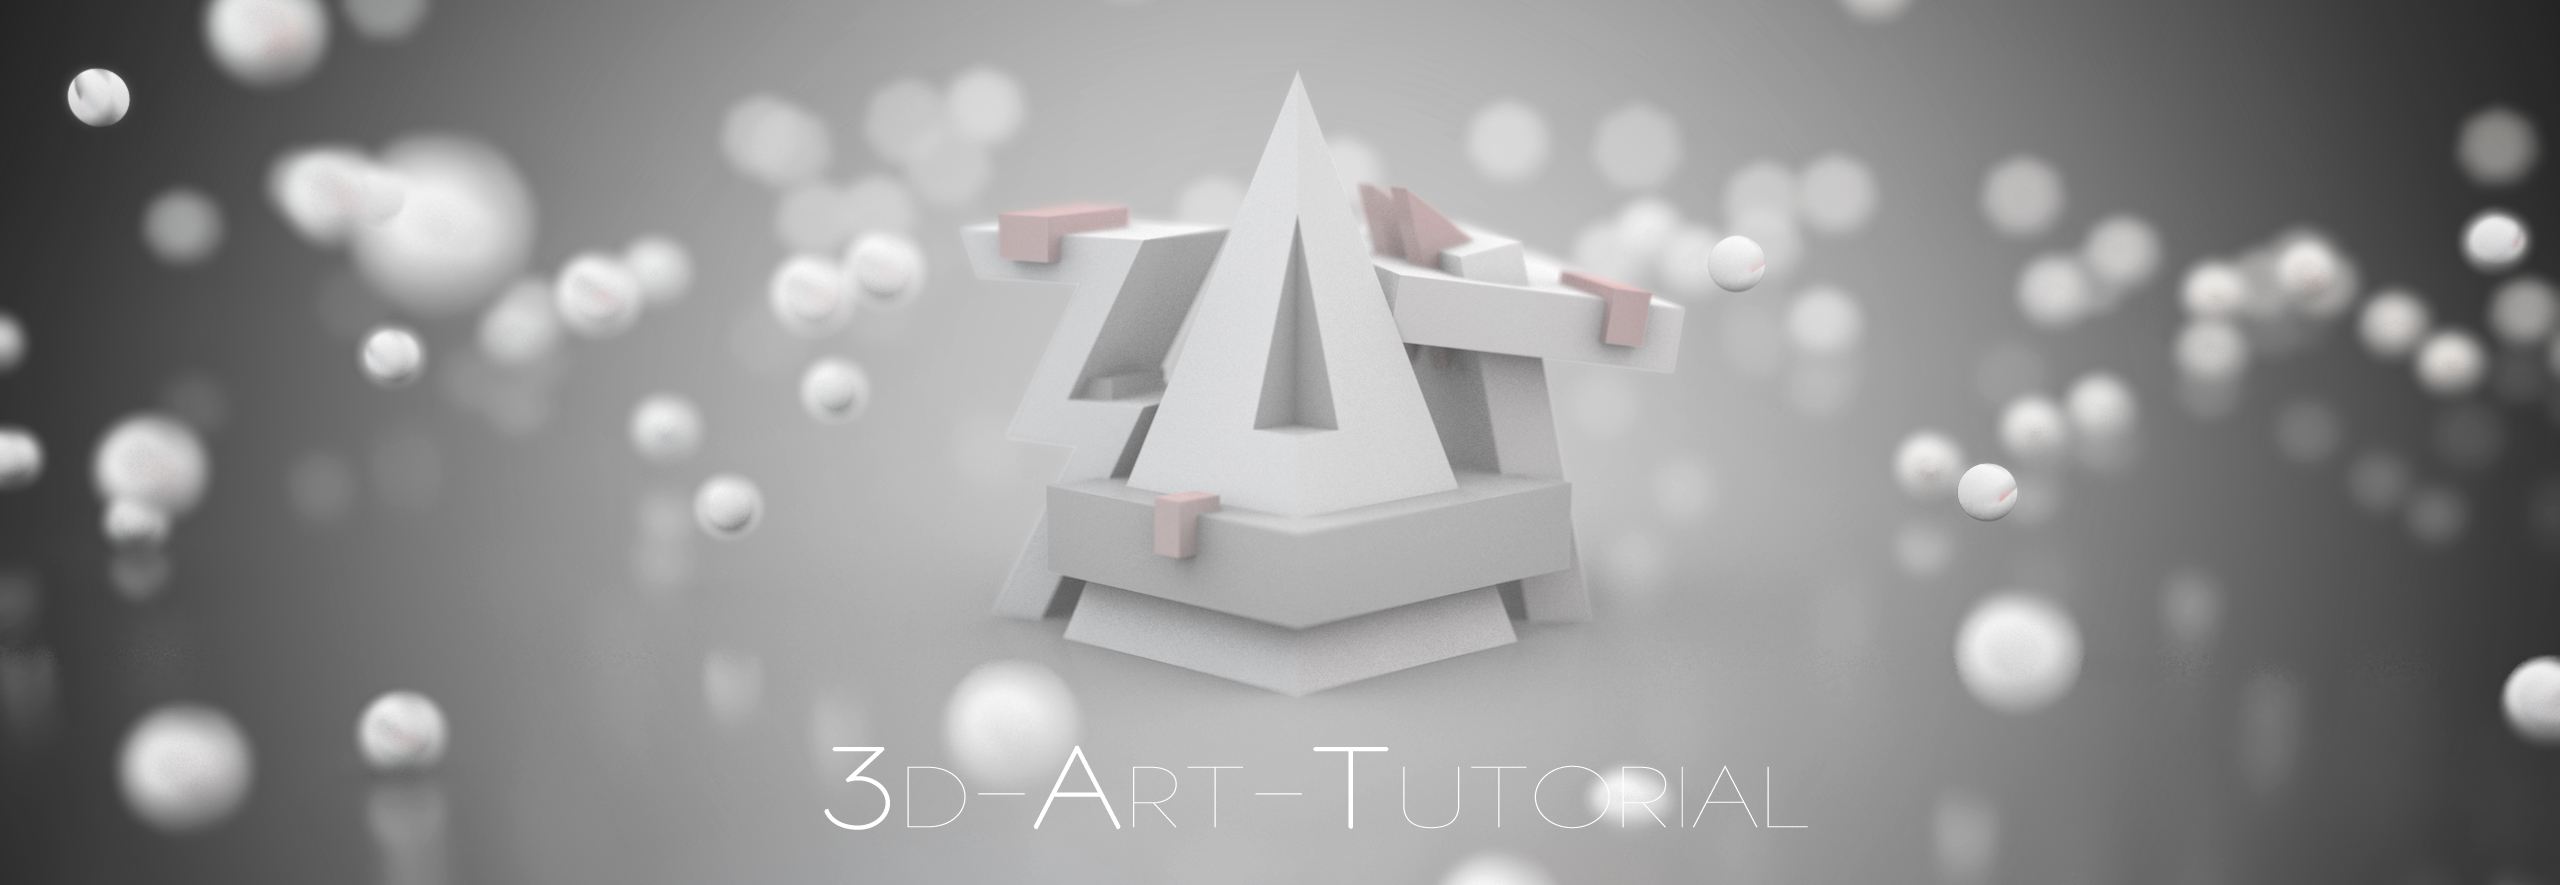 3D-ART-TUTORIAL